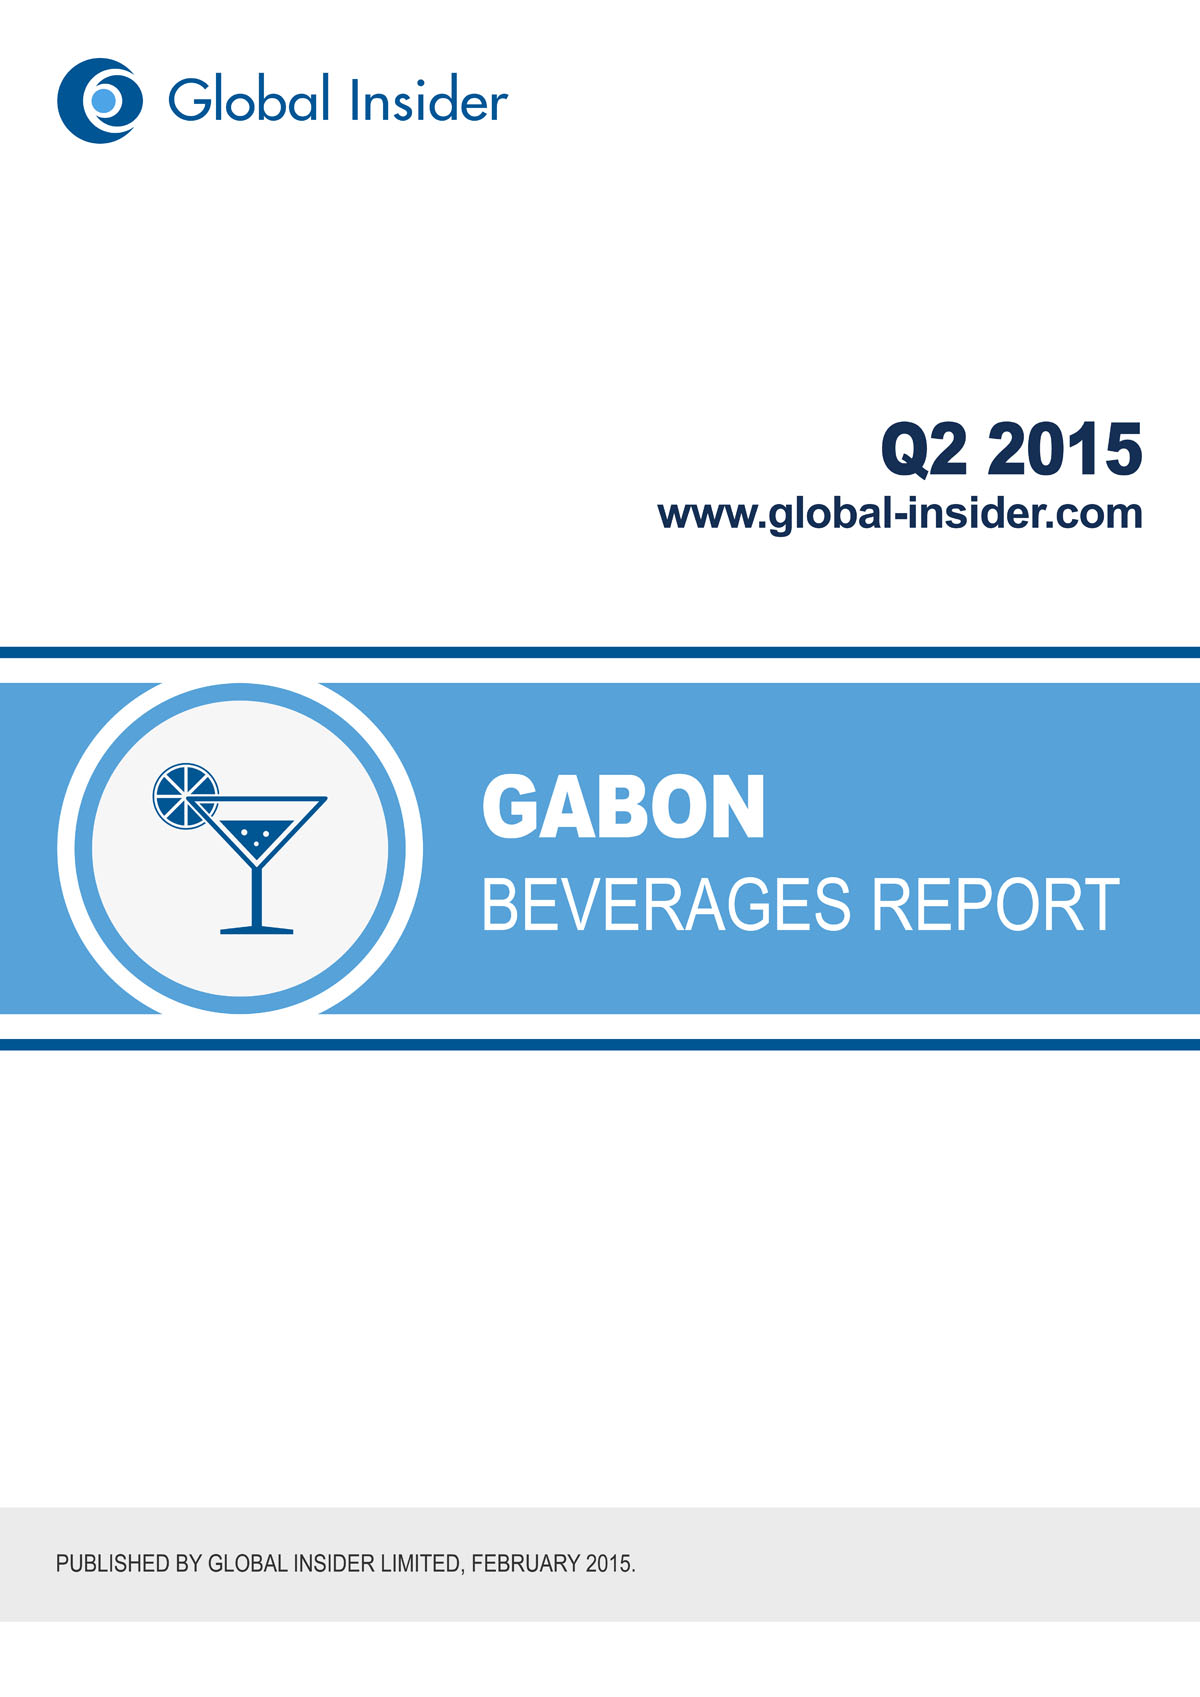 Gabon Beverages Report